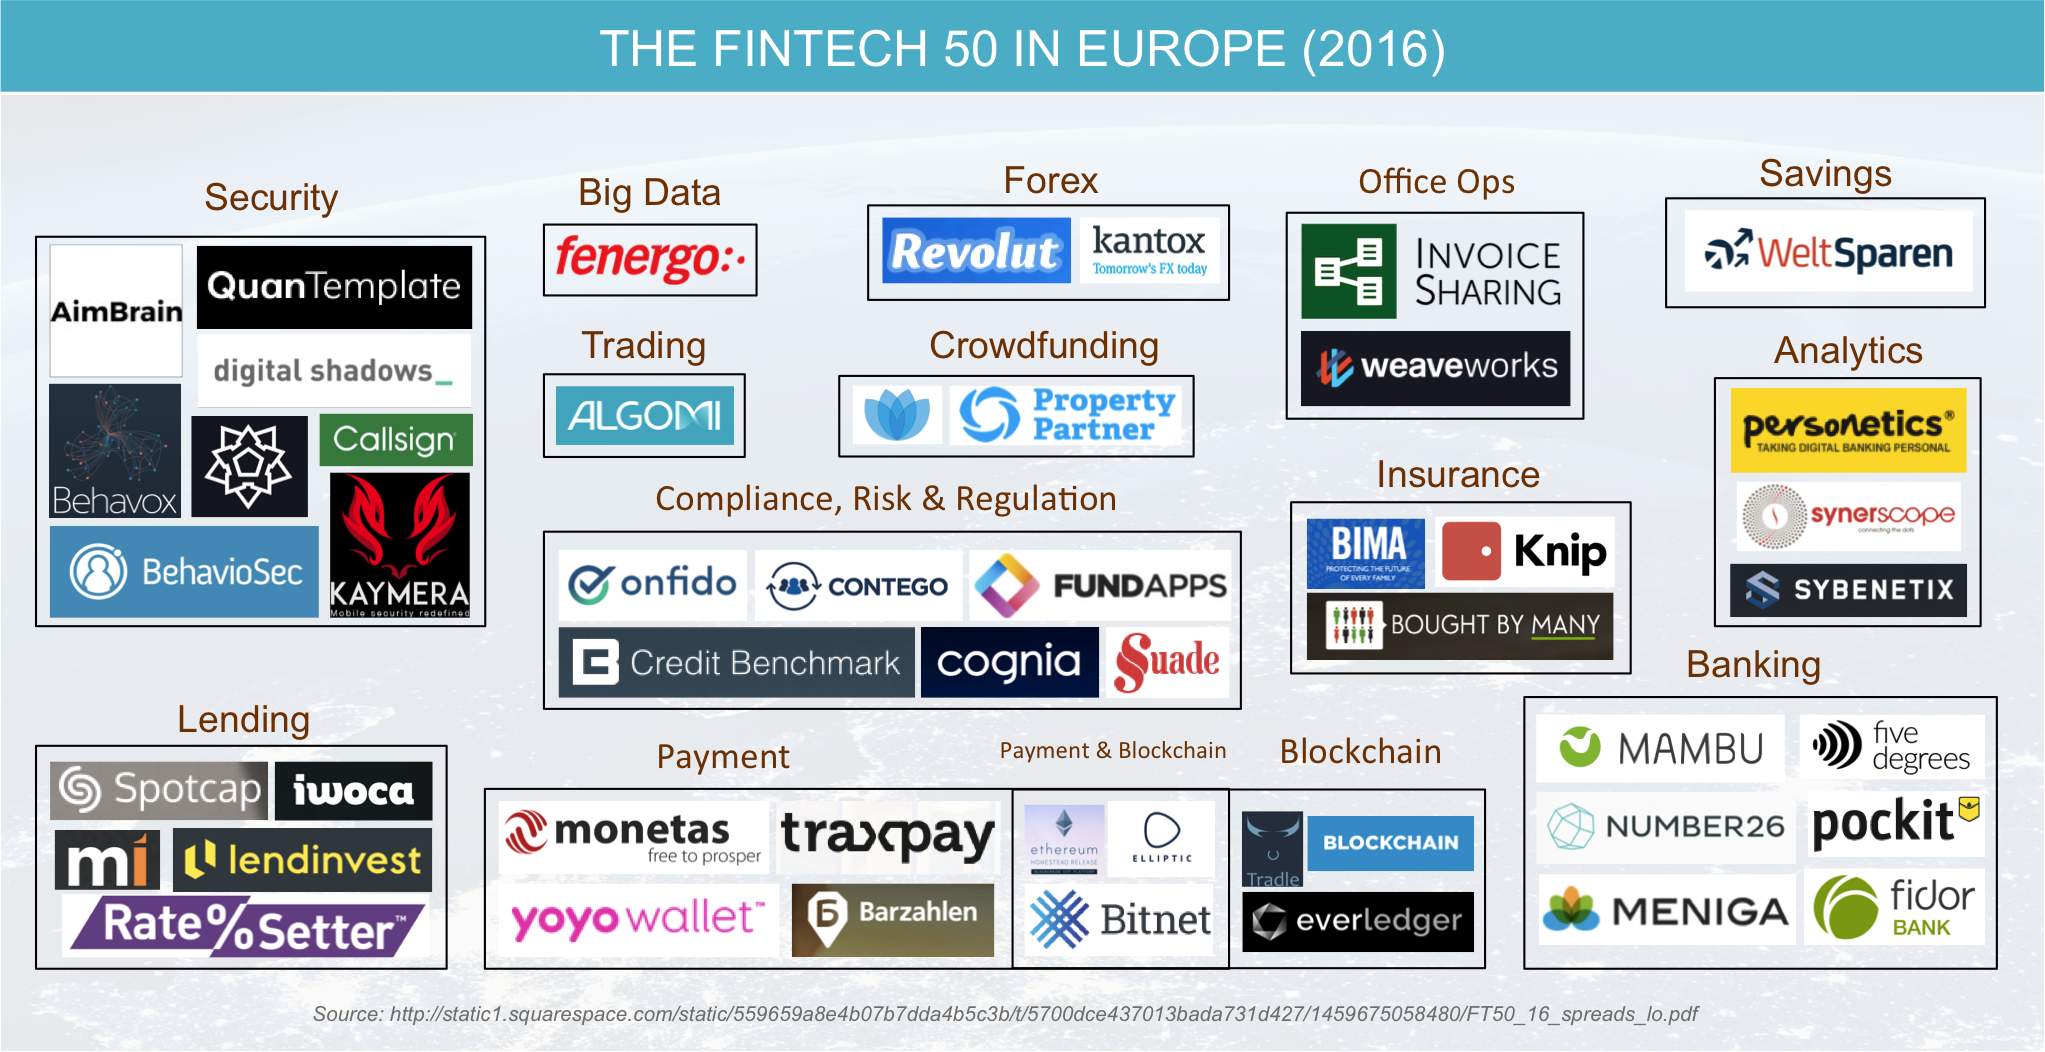 The Fintech50 in Europe 2016